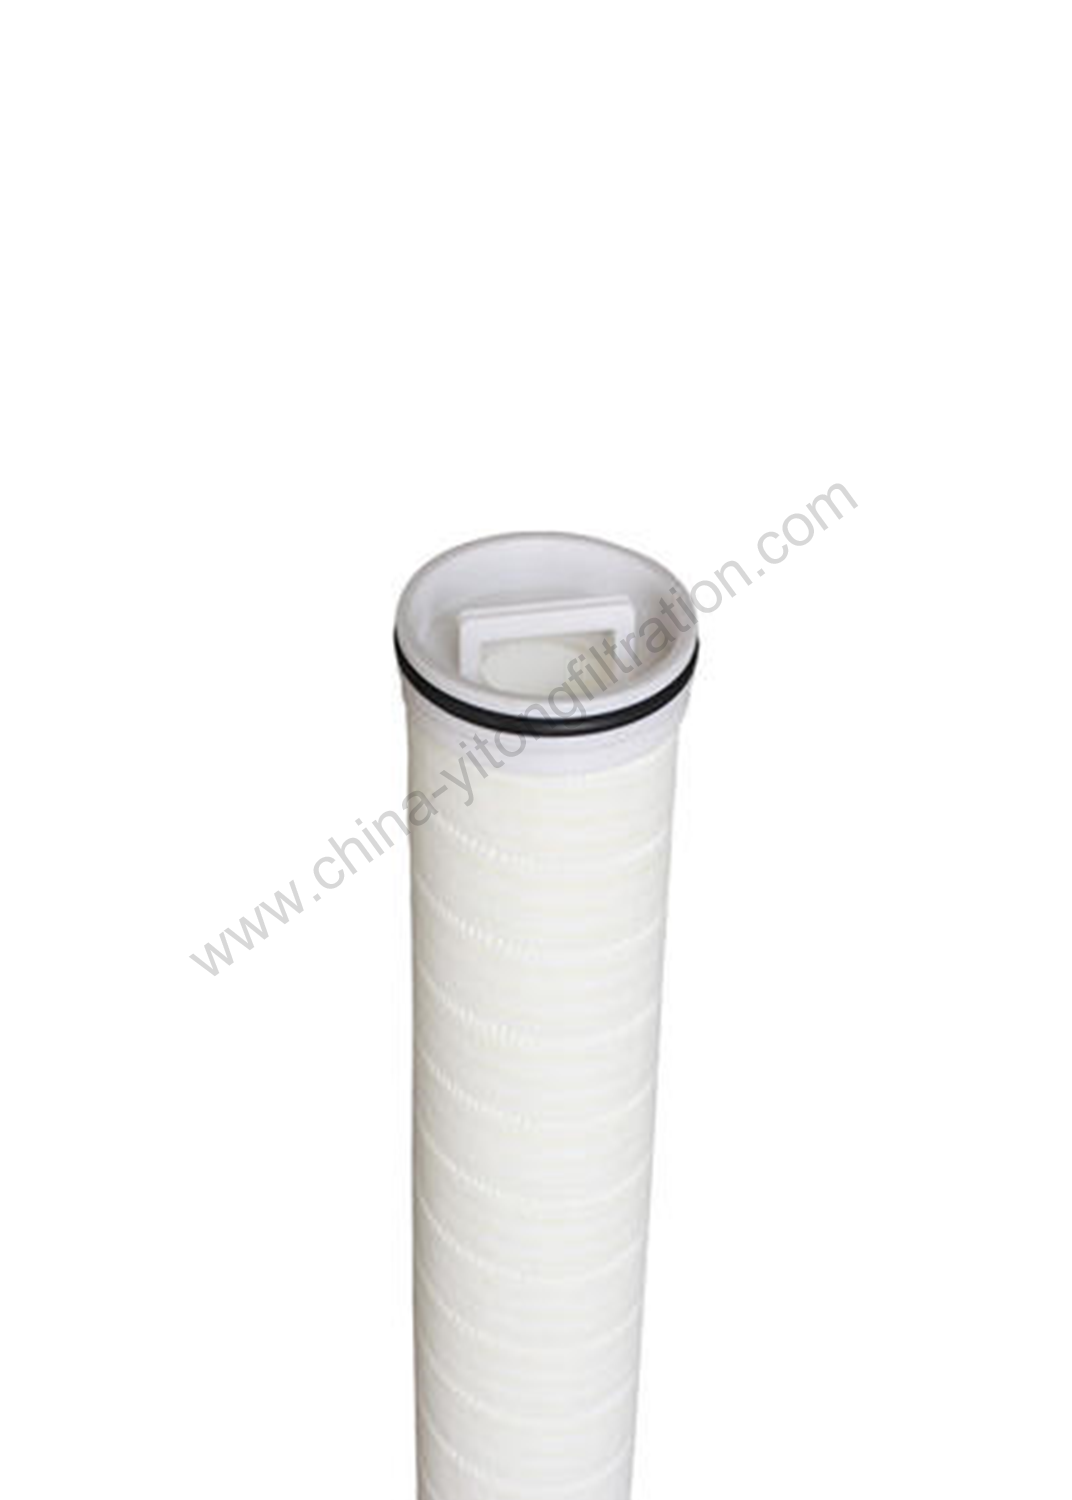 YTHF162 High Flow Filter Cartridge